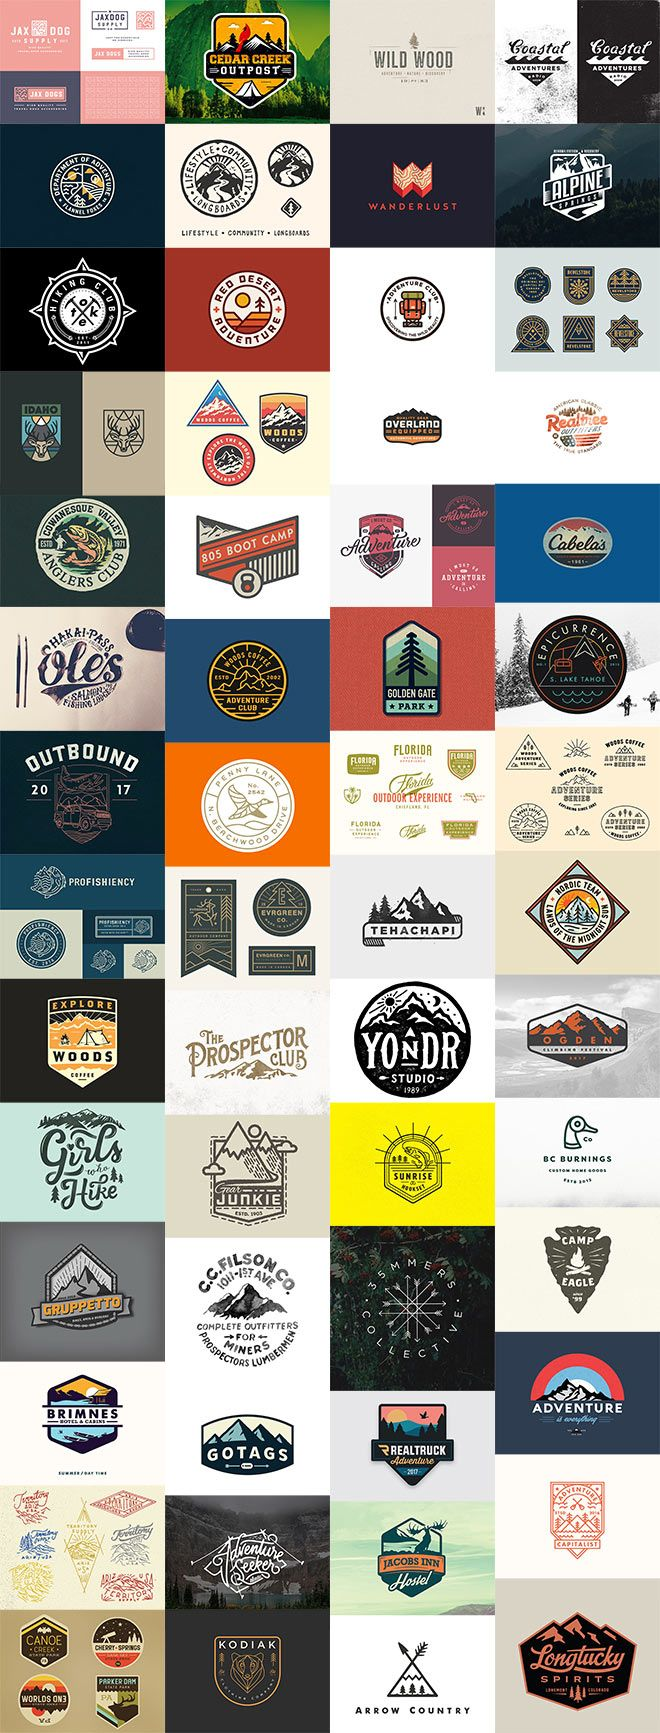 Designs that are based on the theme of the great outdoors are a popular sub-category of the vintage design trend. They're influenced by classic design material associated with outdoor activities, such as the logos for national parks or the different styles of scout badges and souvenir patches. In today's inspiration showcase I present 60 creative …